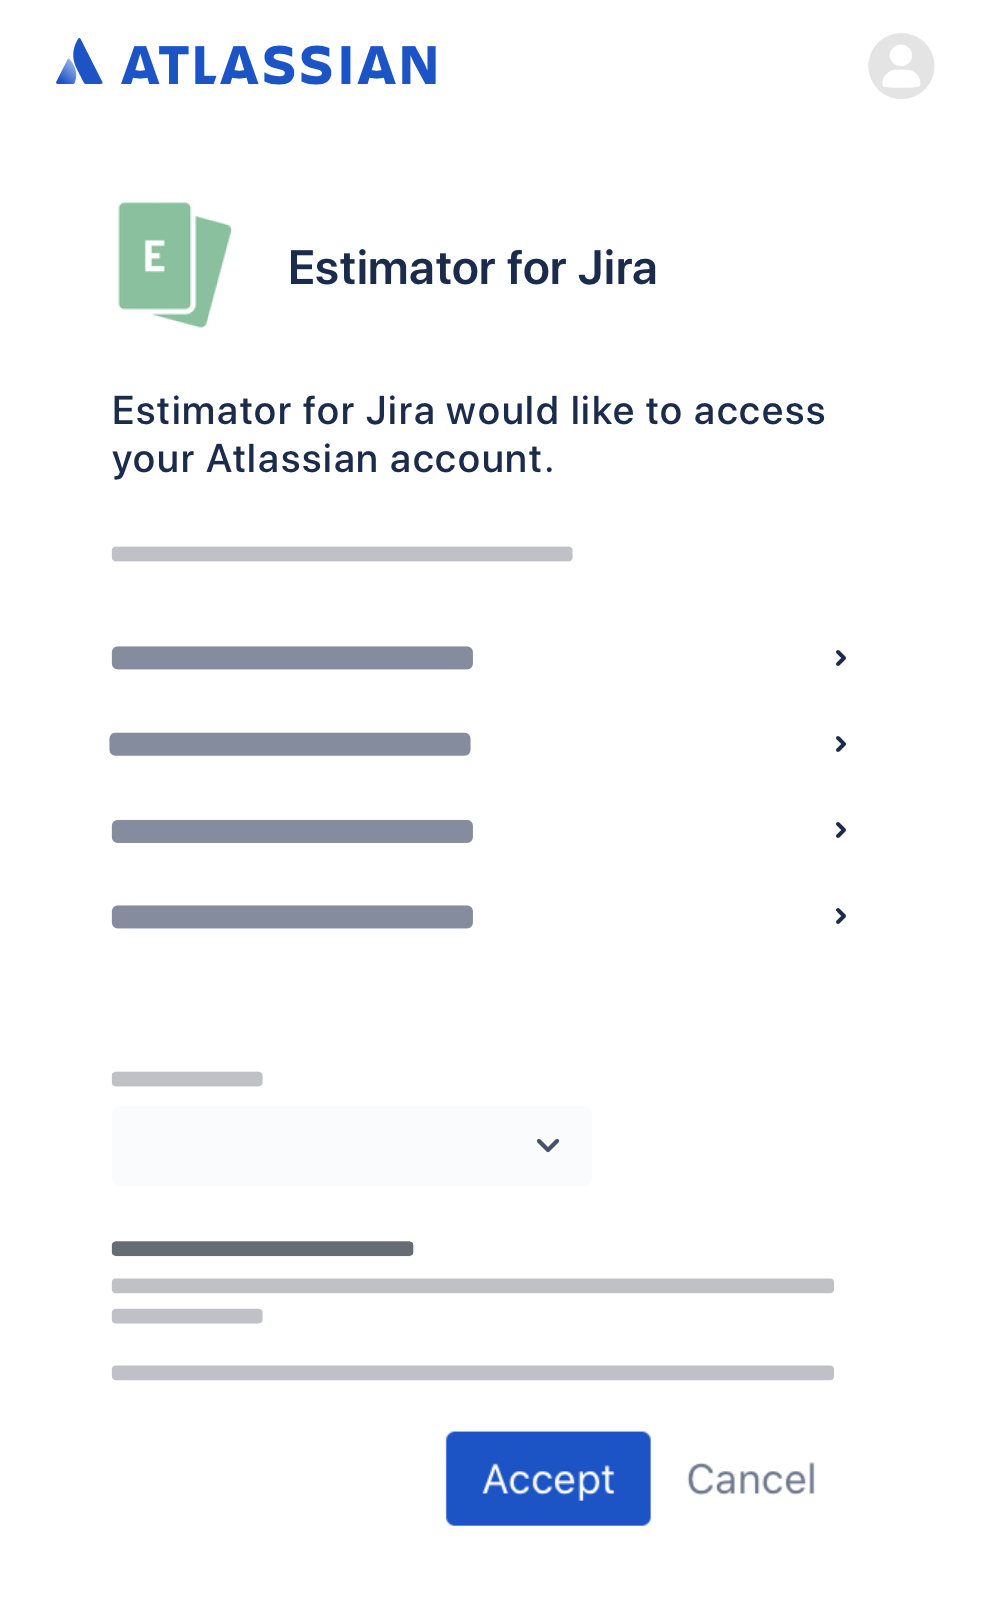 Preview of accepting Estimator for Jira